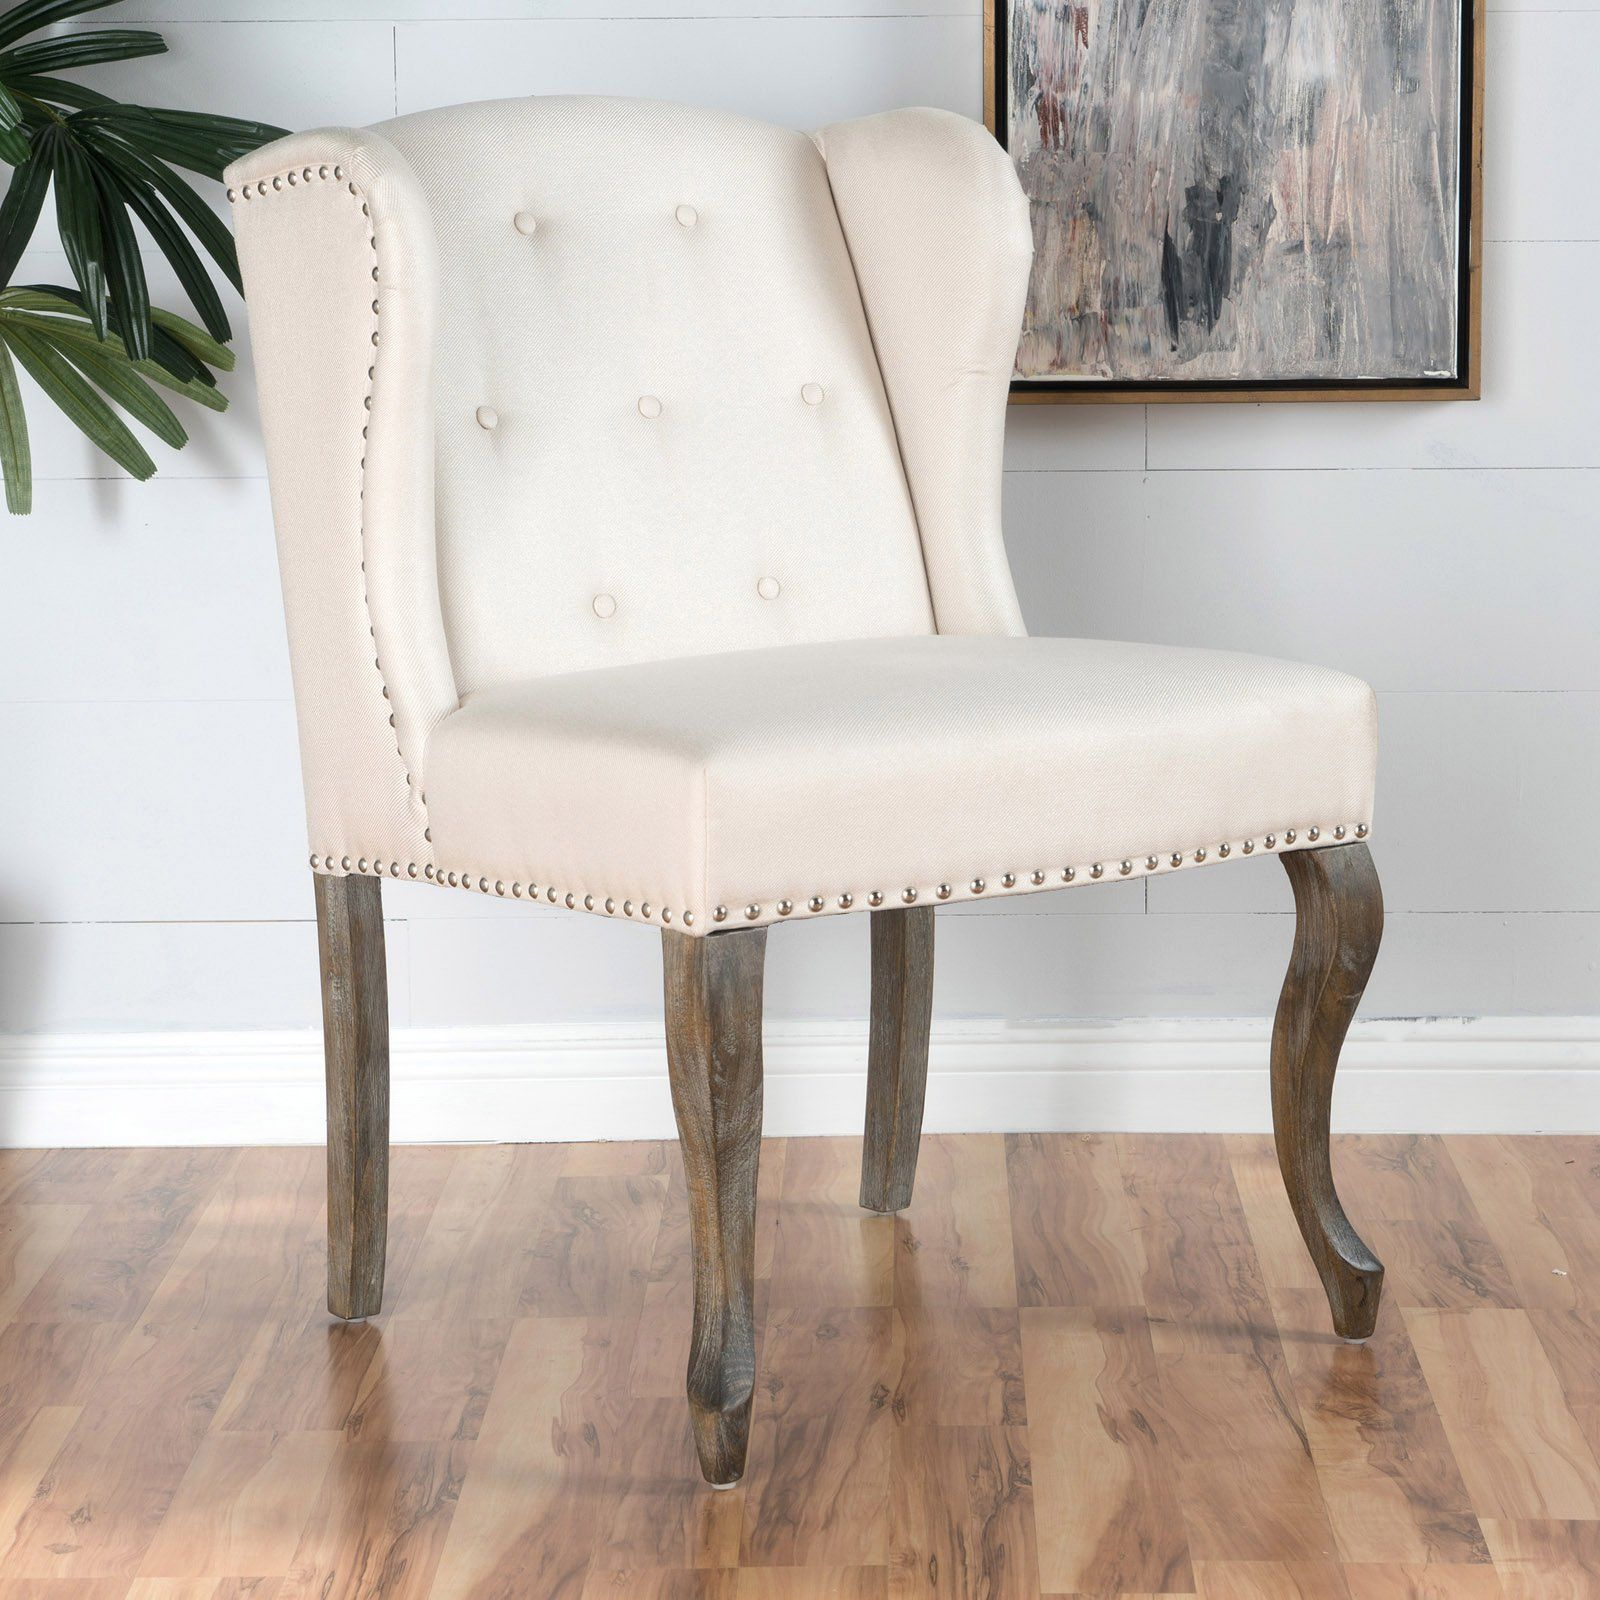 Chair Fabric, Upholstered Chairs